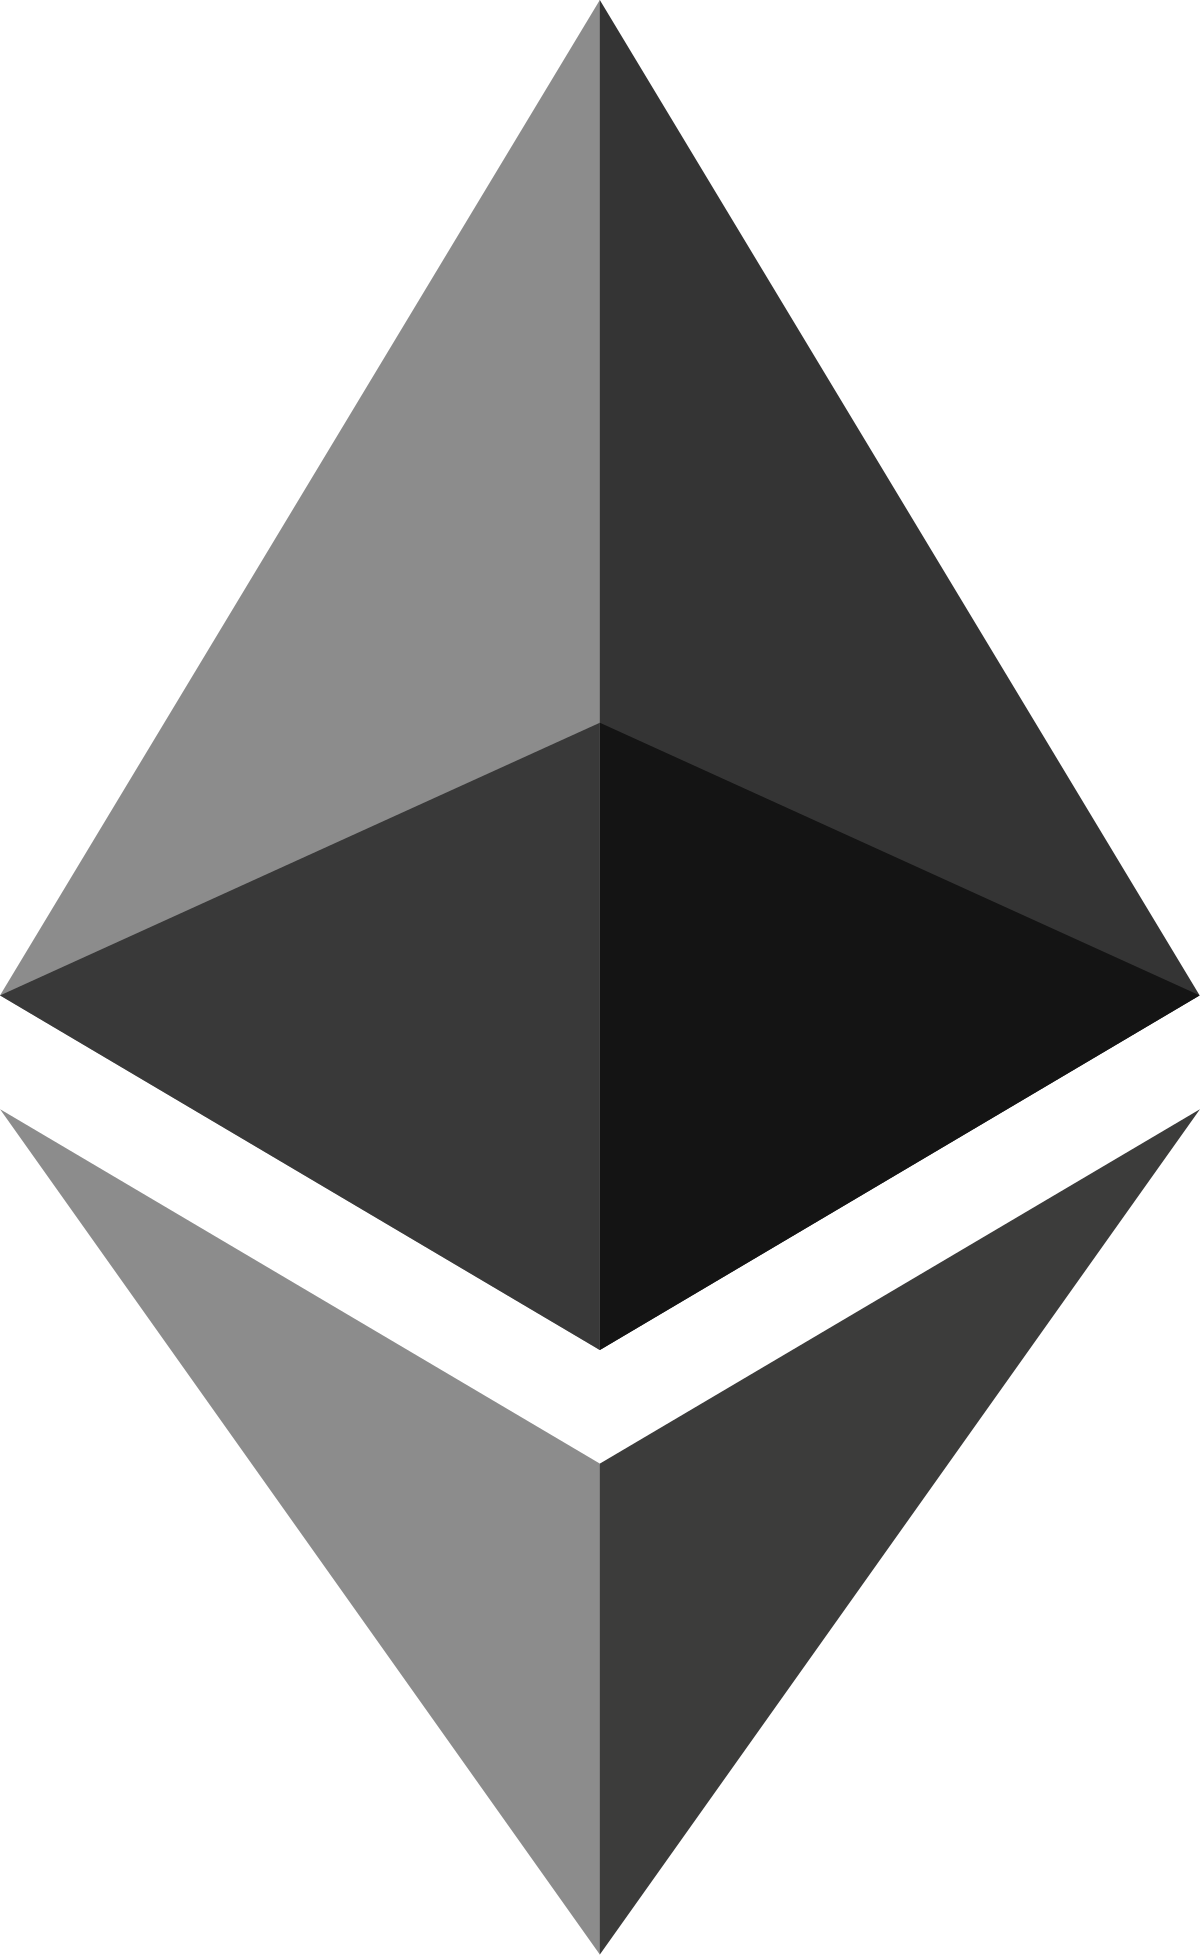 Blockchain Cryptocurrency Ethereum Logo Coin Stack PNG Image